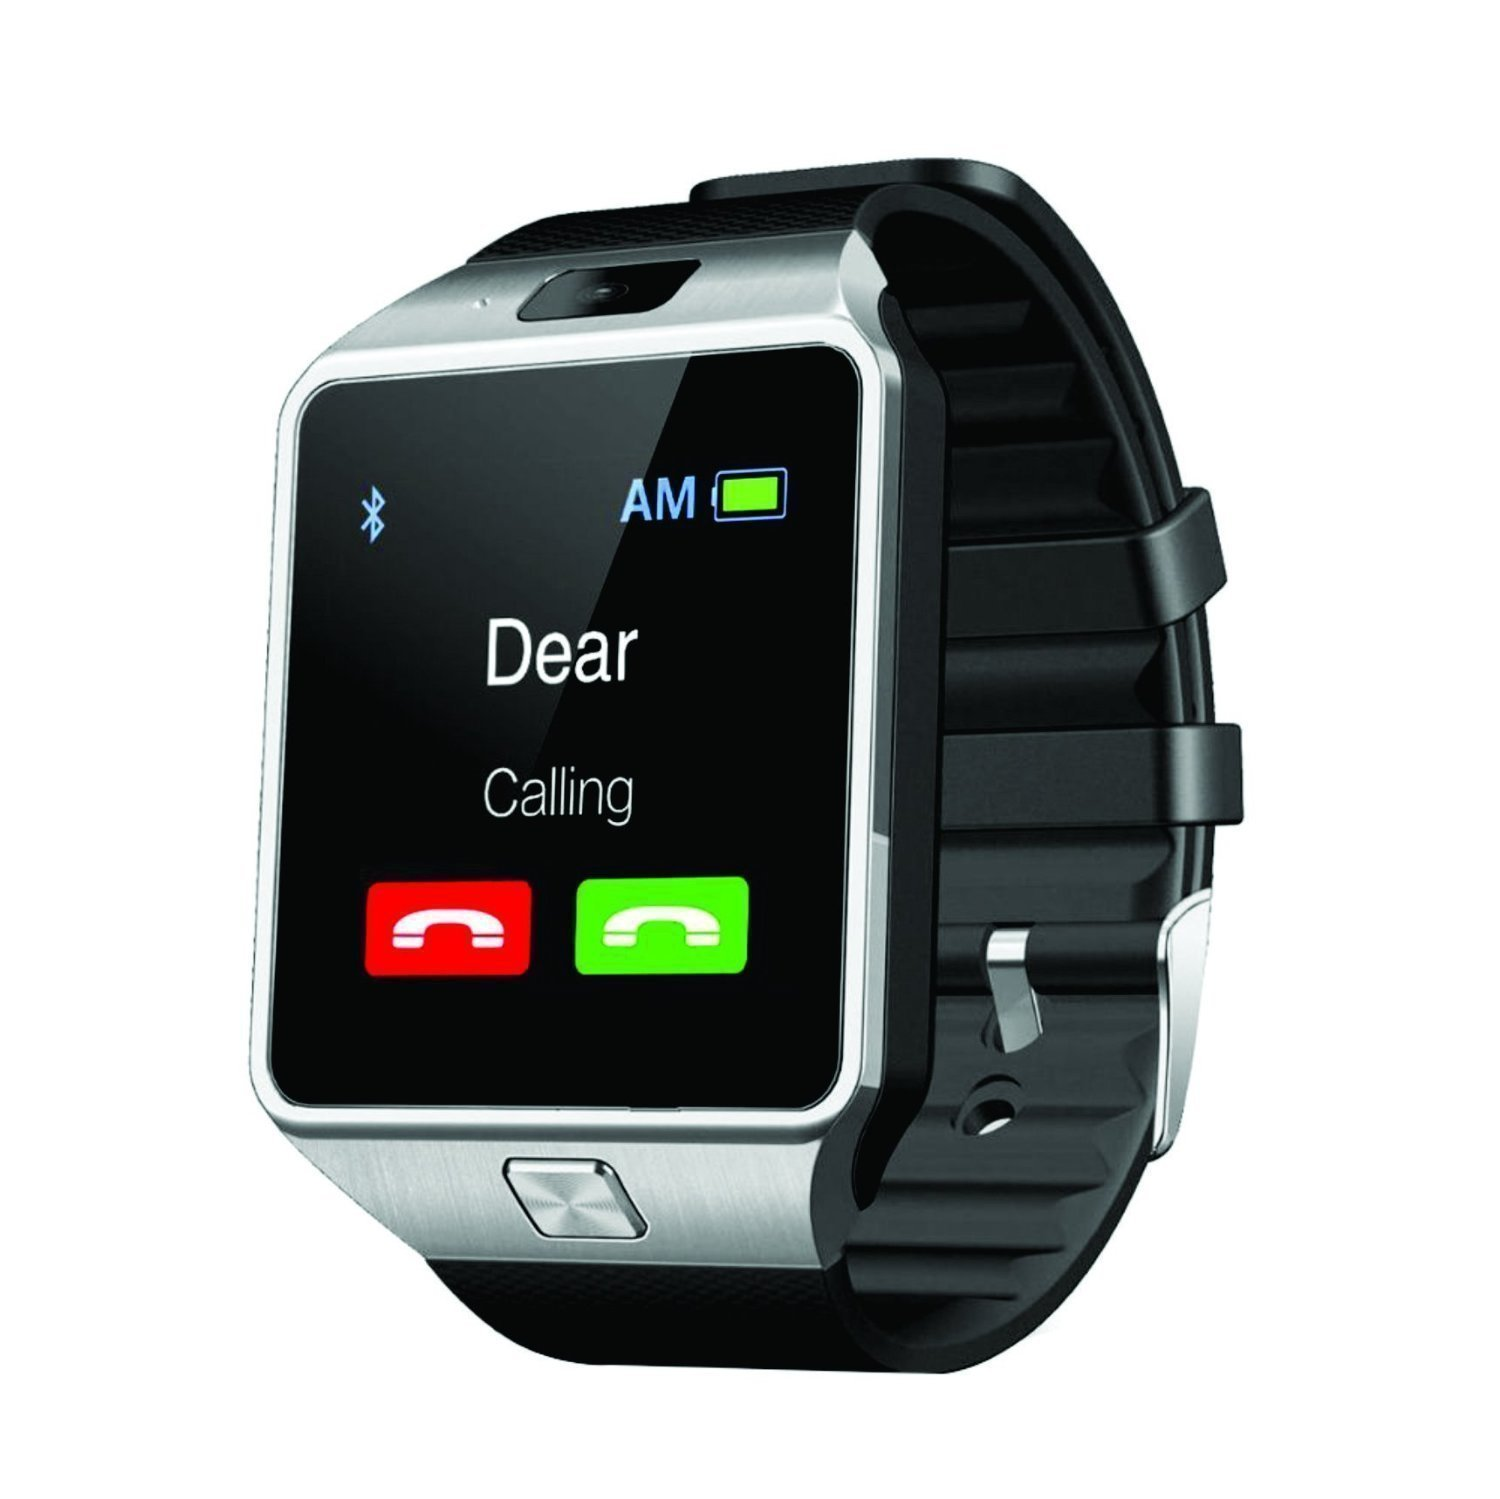 speakers watch dp language bluetooth dmg phone mobile electronics with in smart screen watches amazon touch english